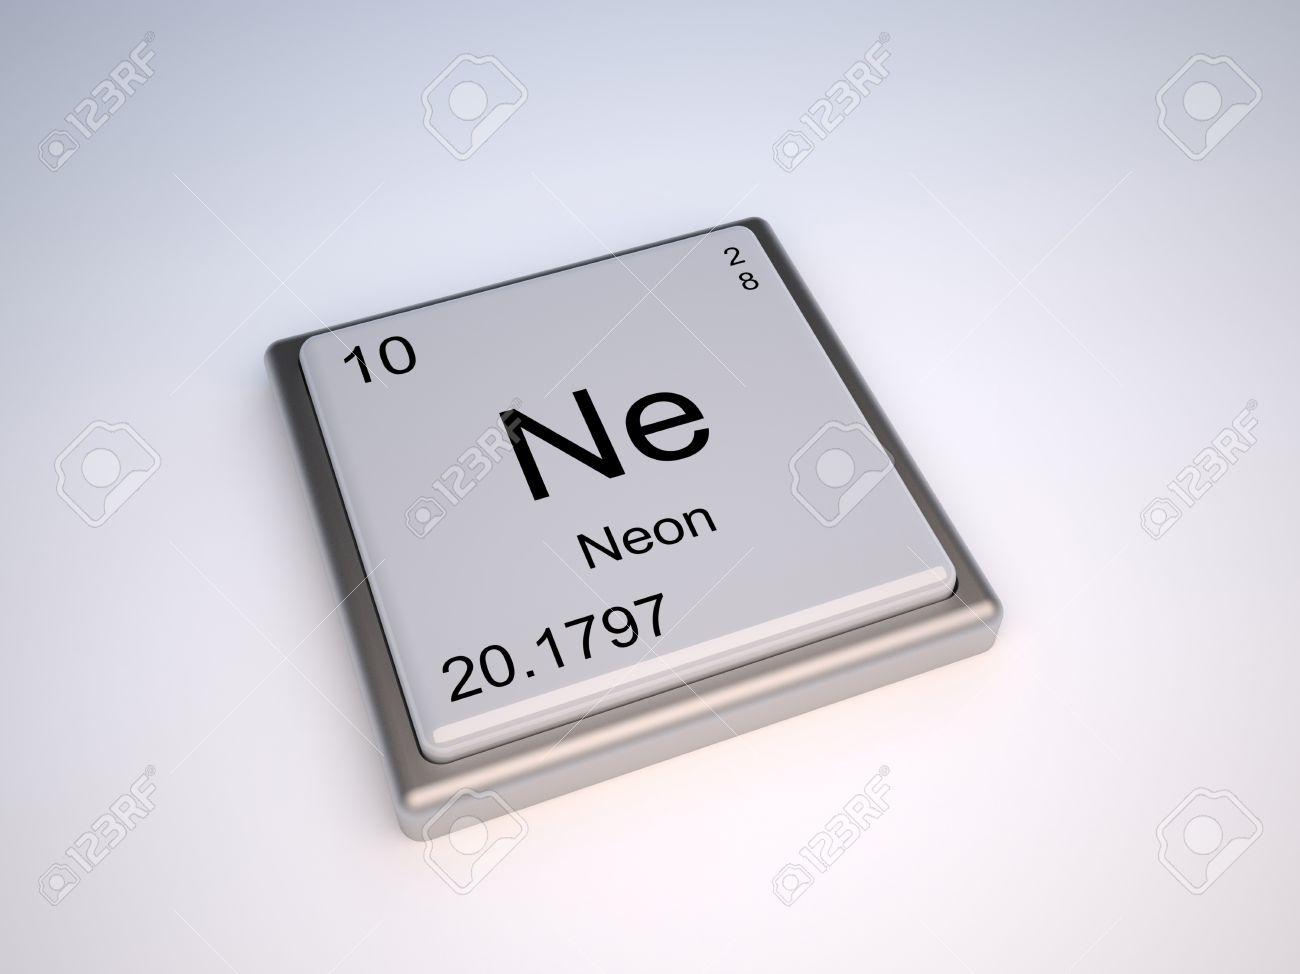 010 neon chemical element of the periodic table with symbol ne 010 neon chemical element of the periodic table with symbol ne iupac stock photo buycottarizona Images